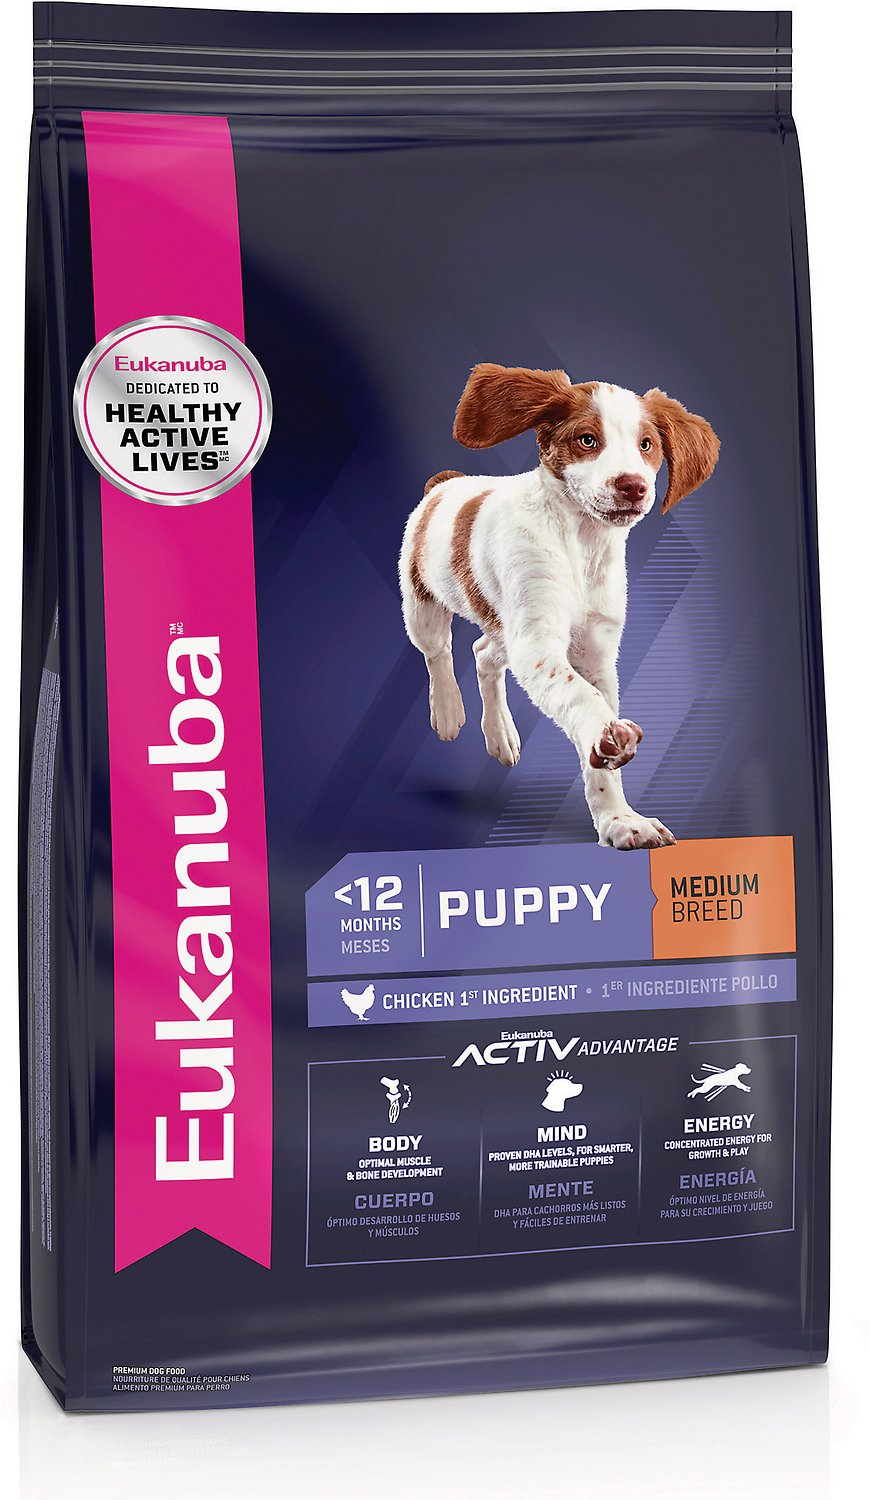 Eukanuba Dog Food Logo